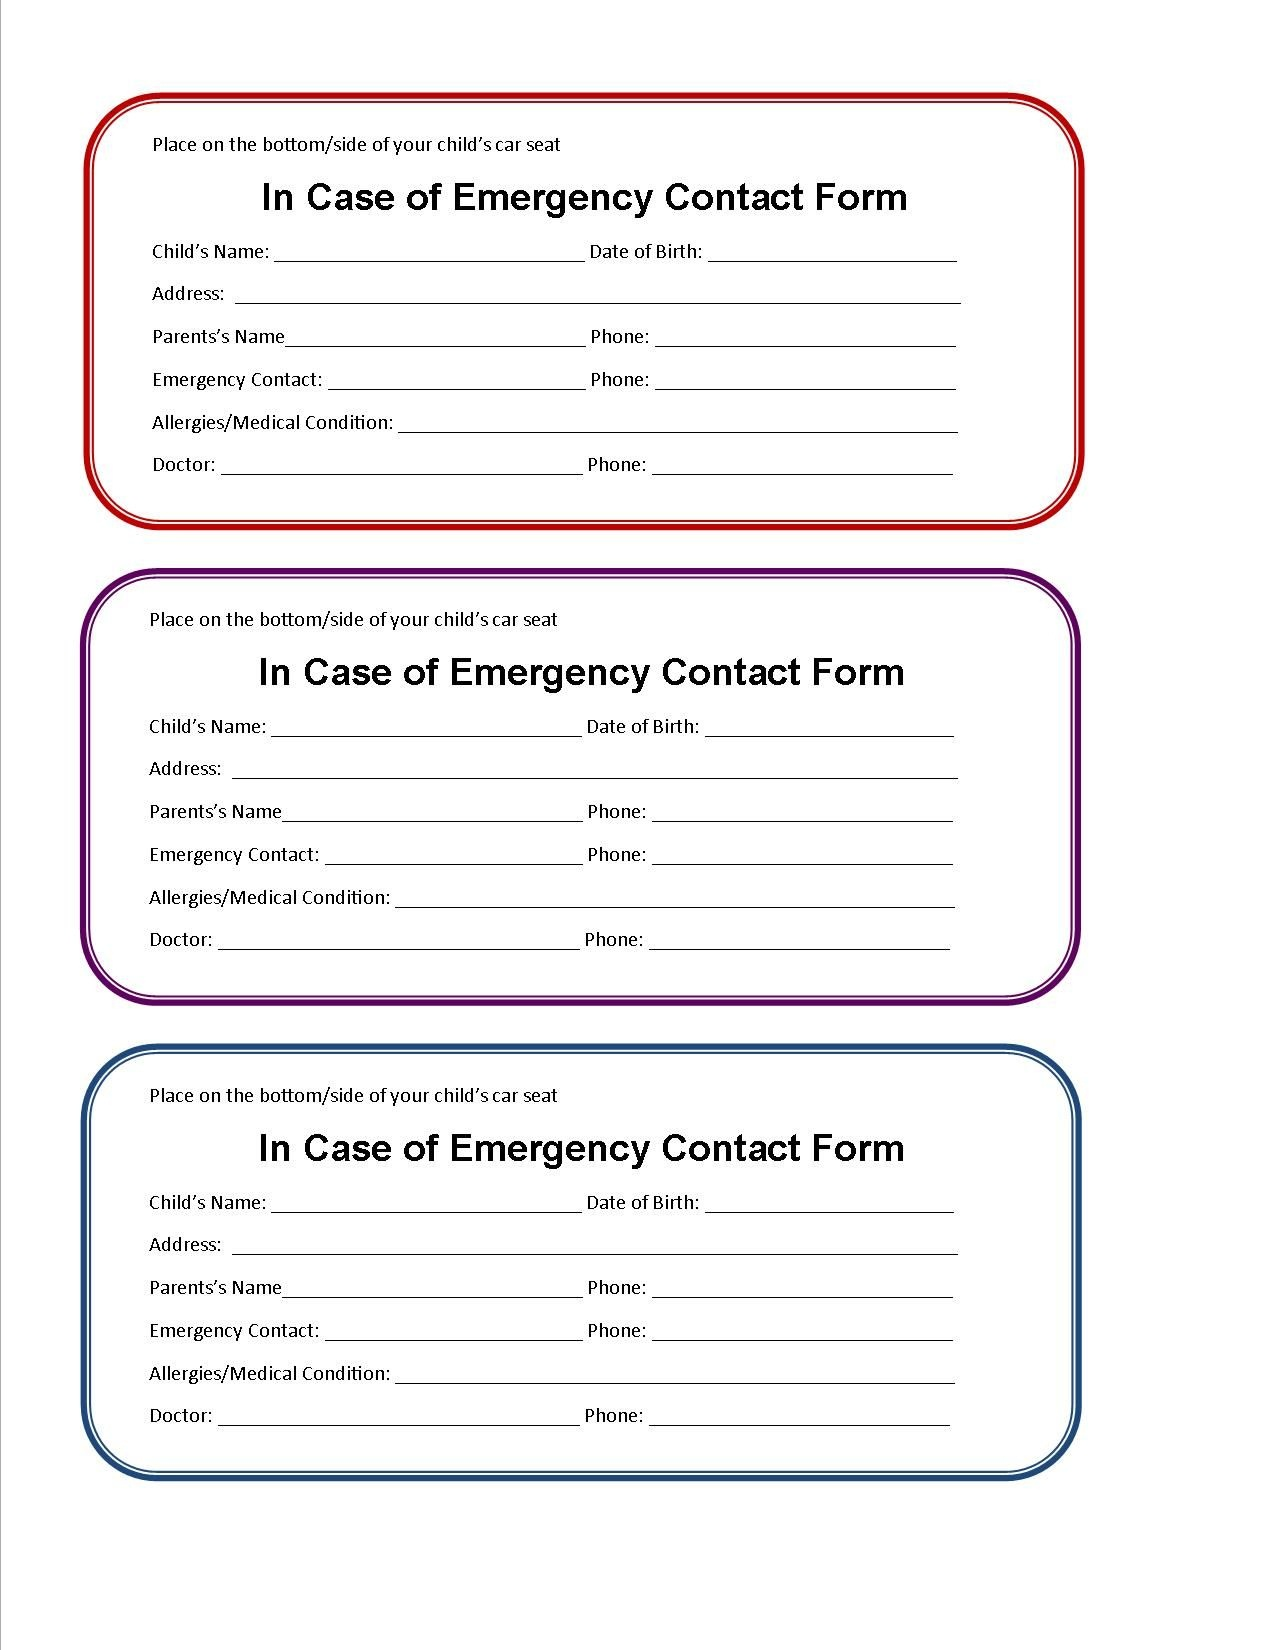 Printable Emergency Contact Form For Car Seat | Class Room Projects - Free Printable Contact Forms